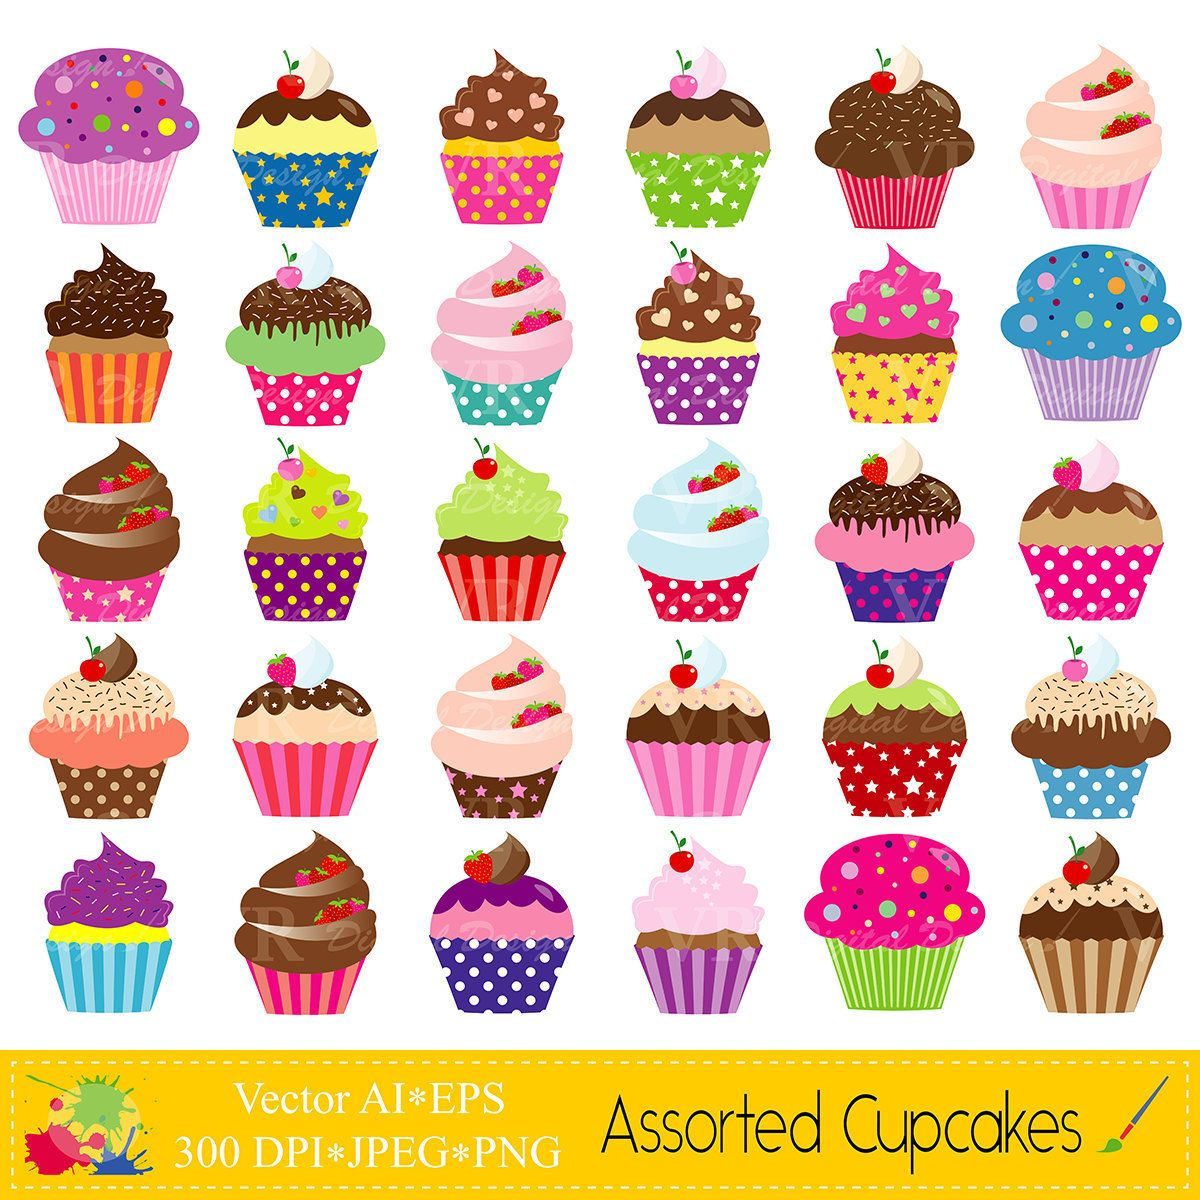 Mother Daughter Cooking Cupcakes Stock Illustrations – 5 Mother Daughter Cooking  Cupcakes Stock Illustrations, Vectors & Clipart - Dreamstime